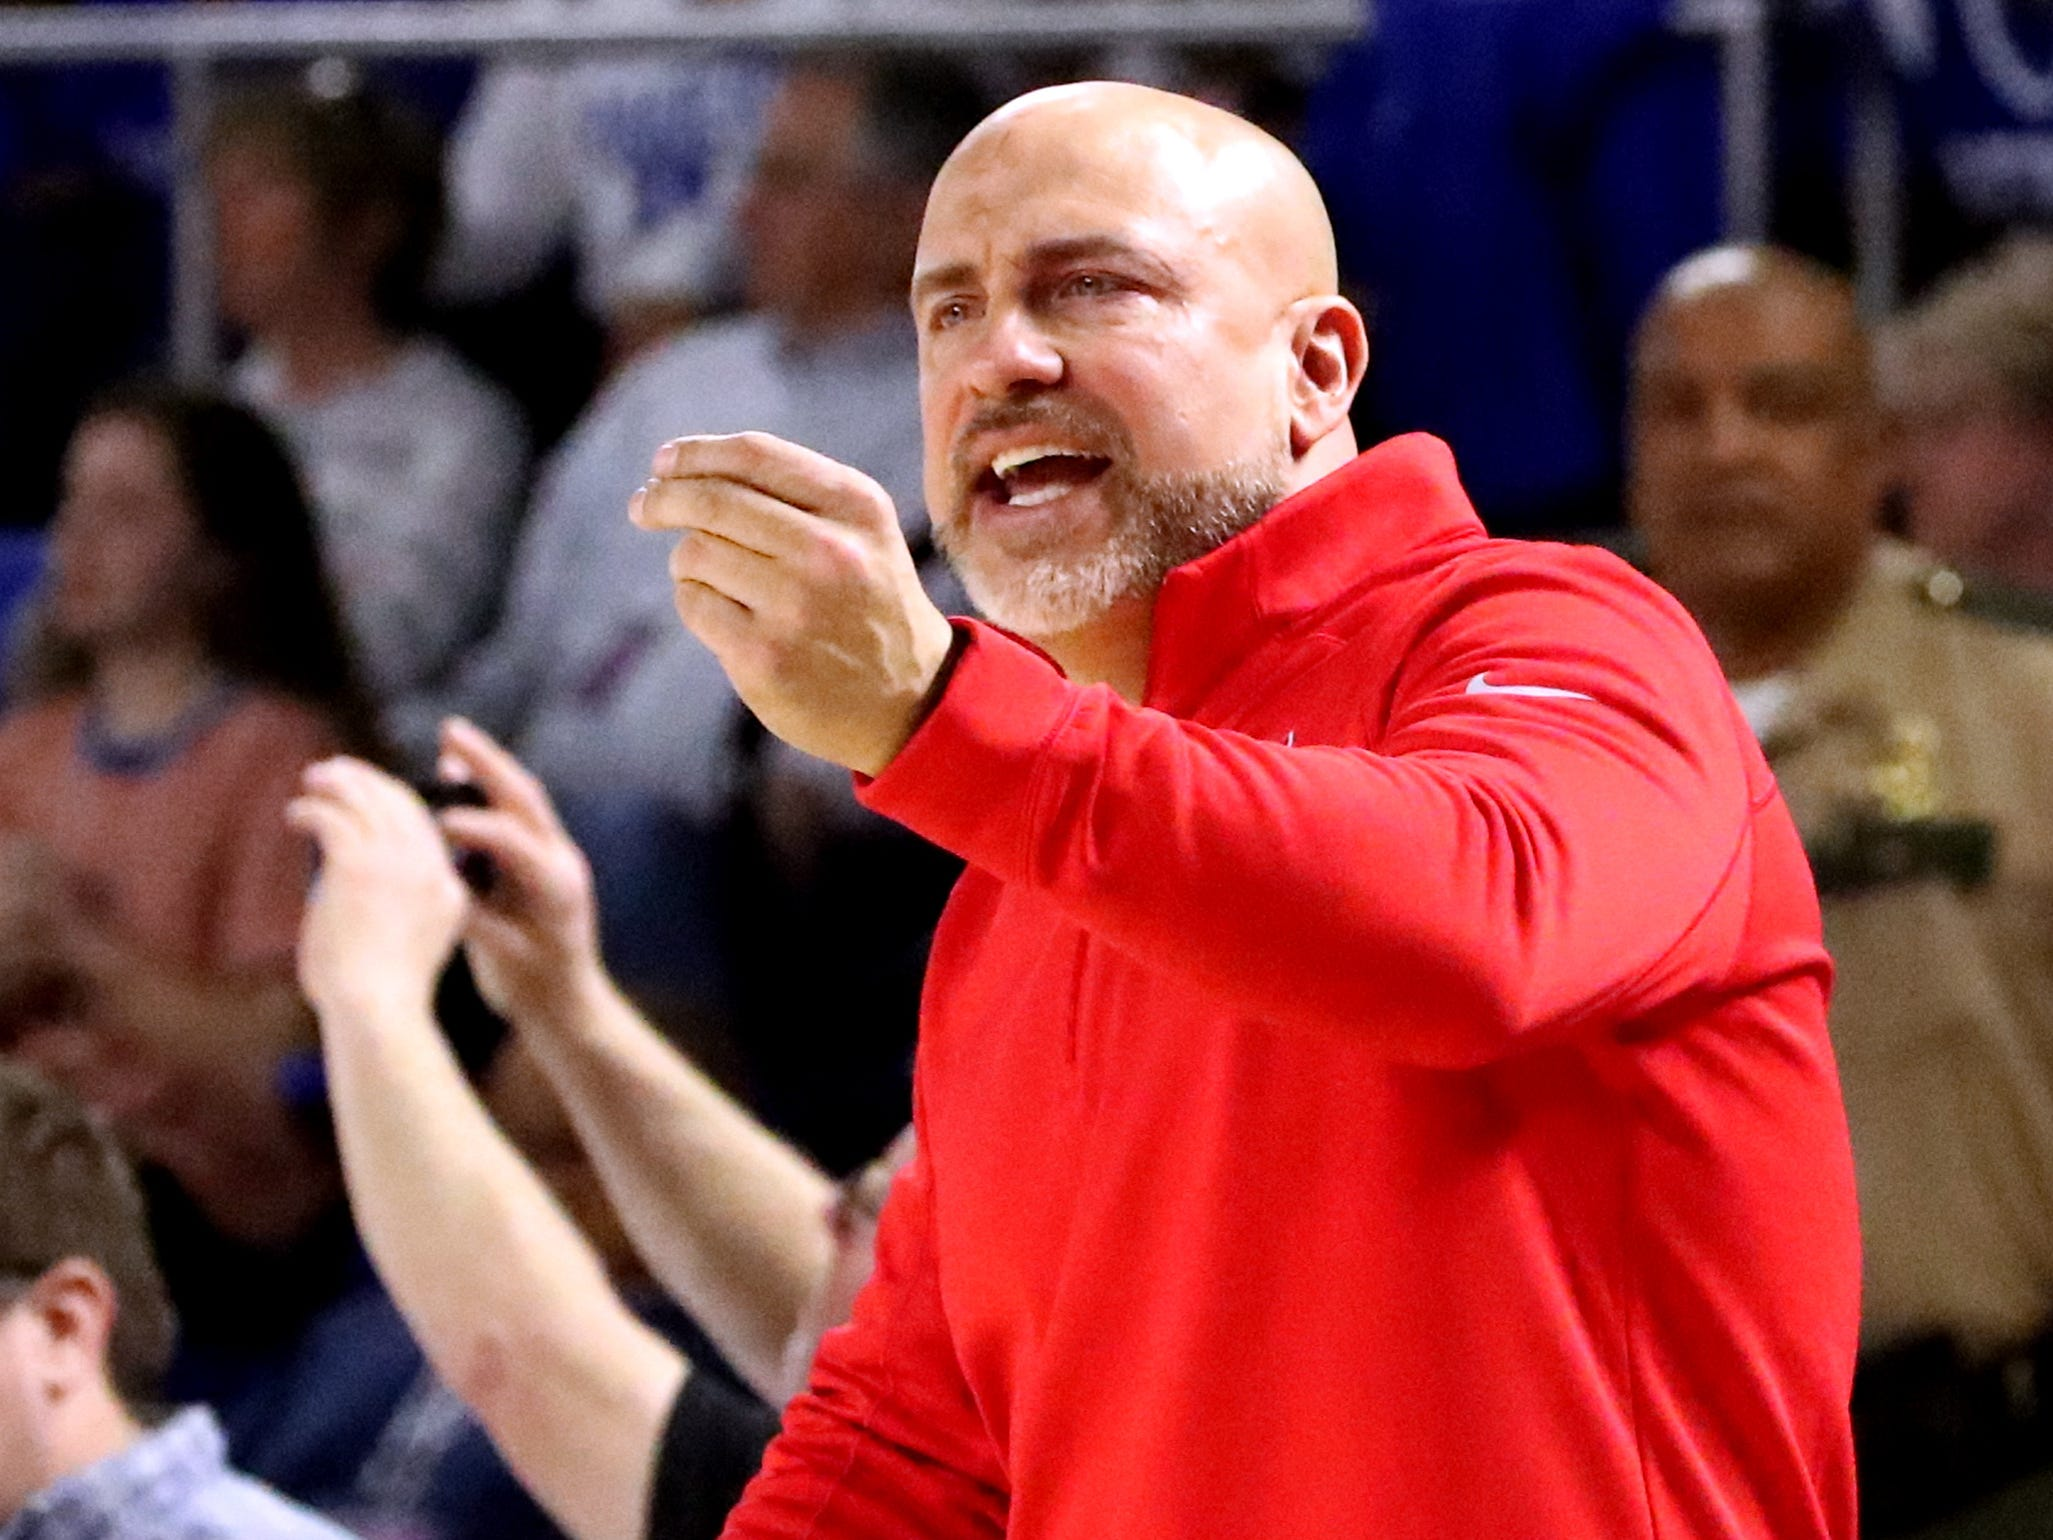 Oakland's head coach Troy Bond on the sidelines during the quarterfinal round of the TSSAA Class AAA Boys State Tournament against Brentwood, on Thursday, March 14, 2019, at Murphy Center in Murfreesboro, Tenn.